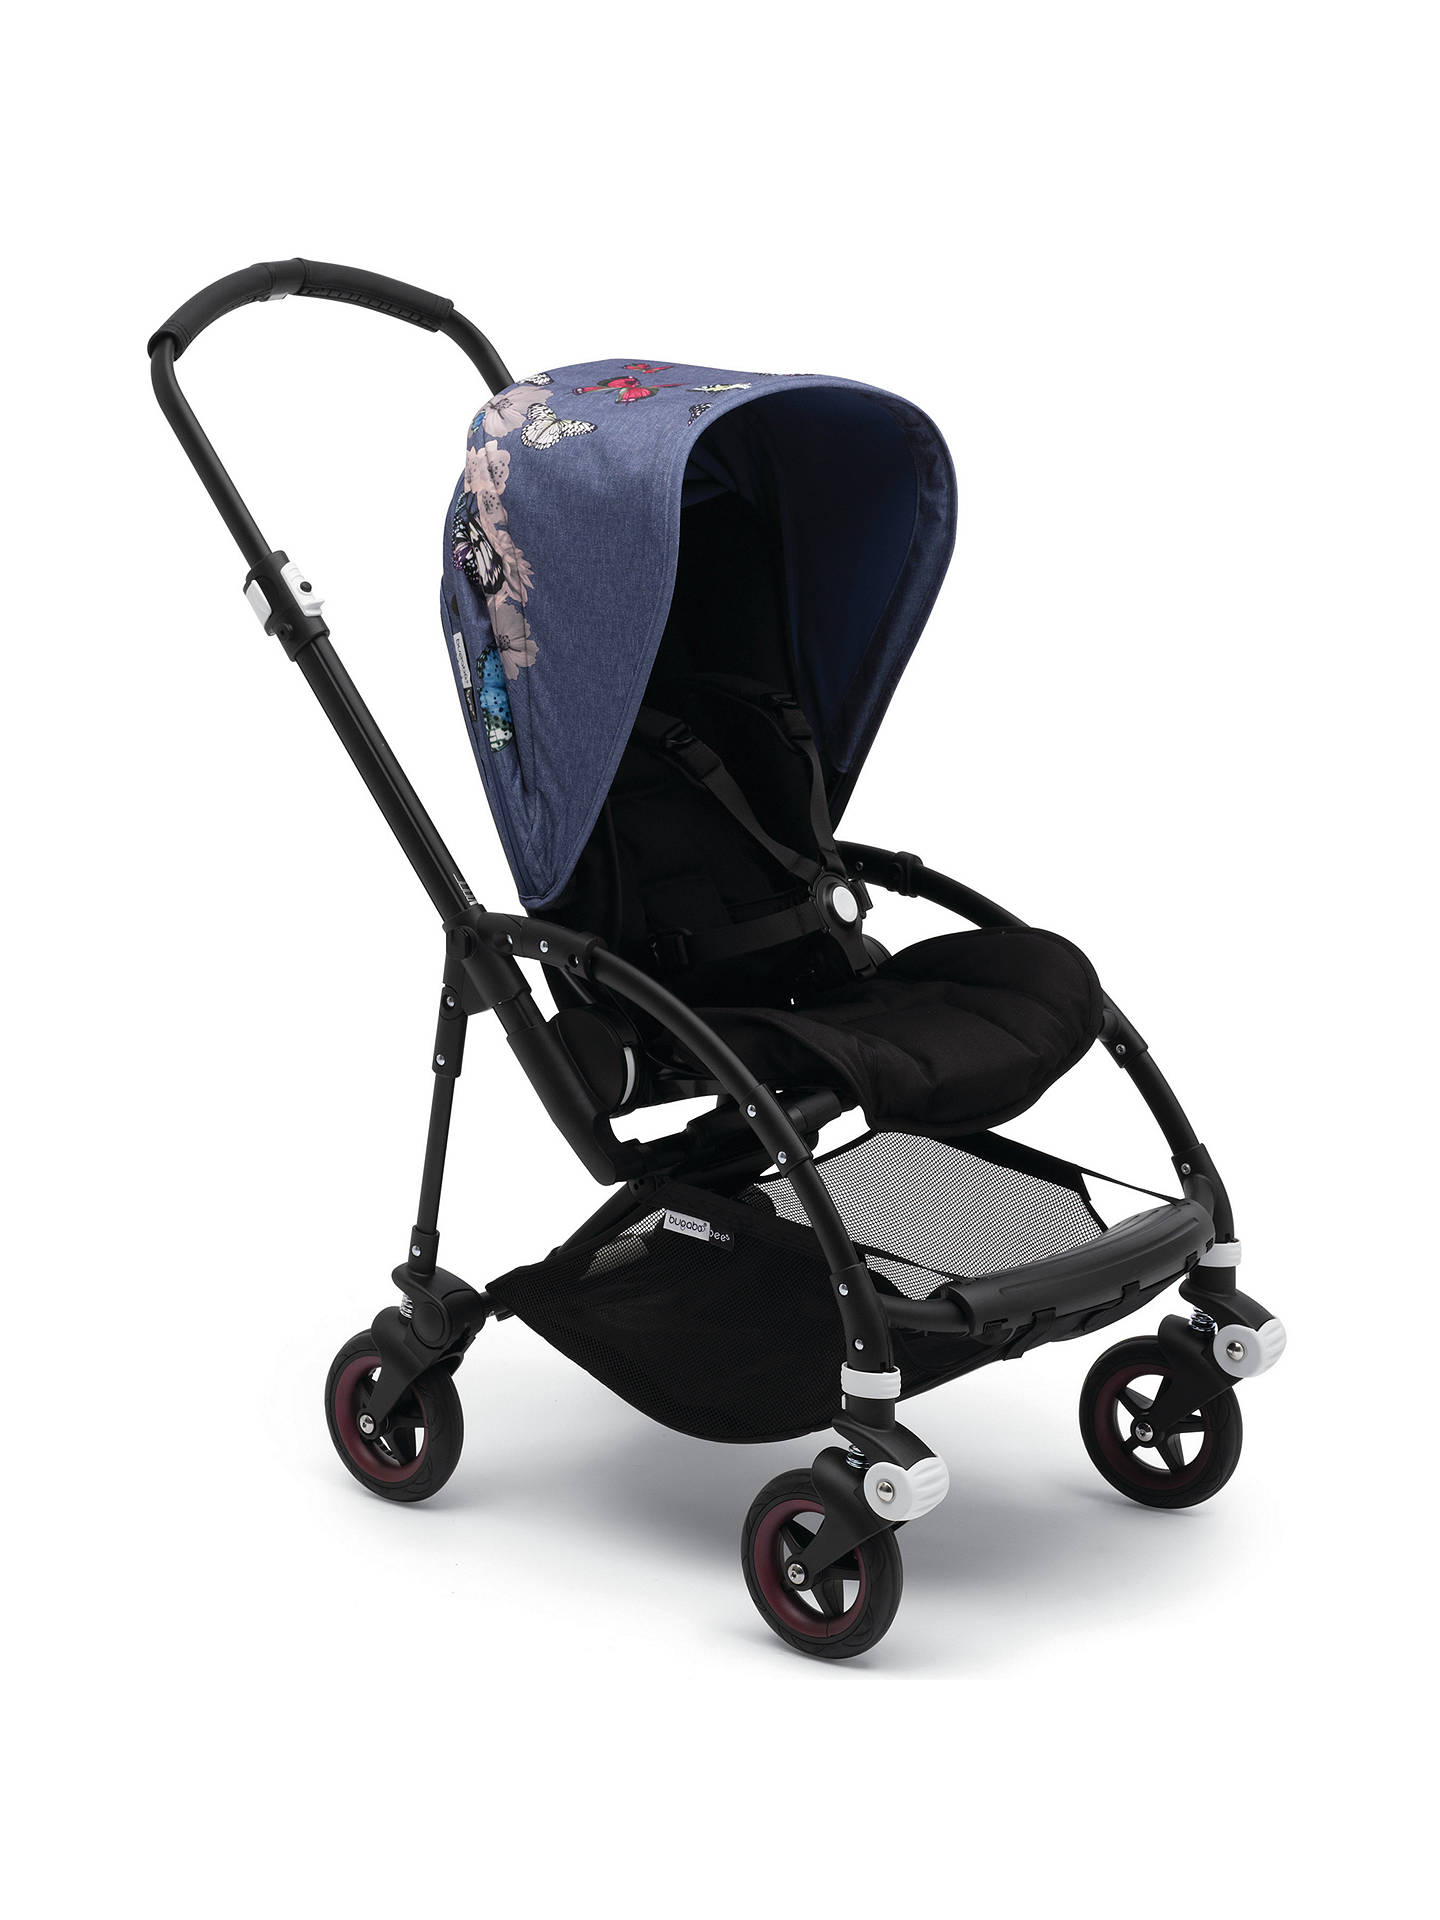 BuyBugaboo Bee 5 Pushchair Sun Canopy, Botanic Online at johnlewis.com